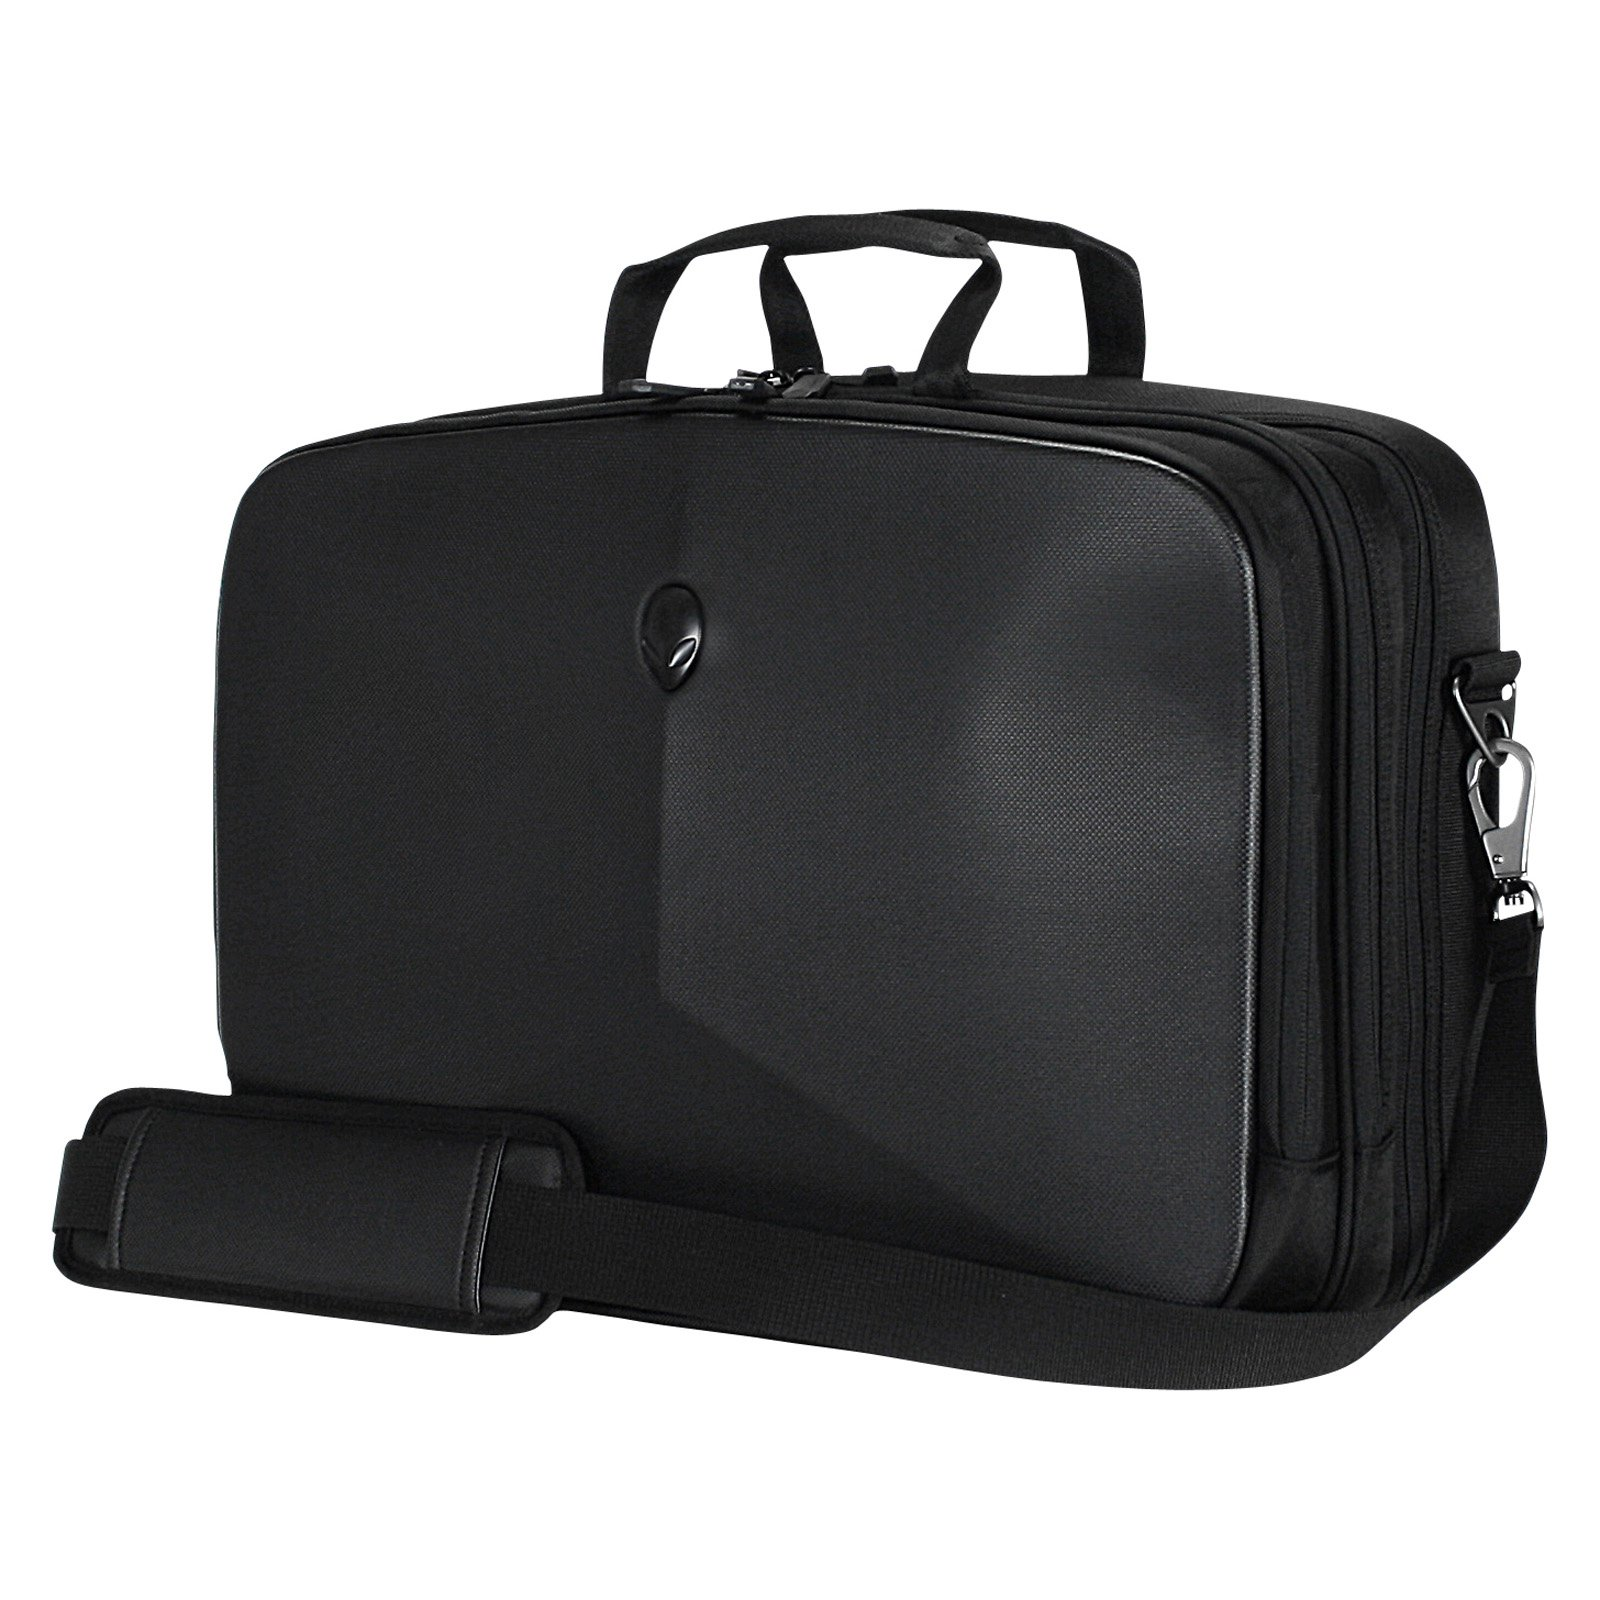 "Alienware 17"" Vindicator Briefcase by Alienware"